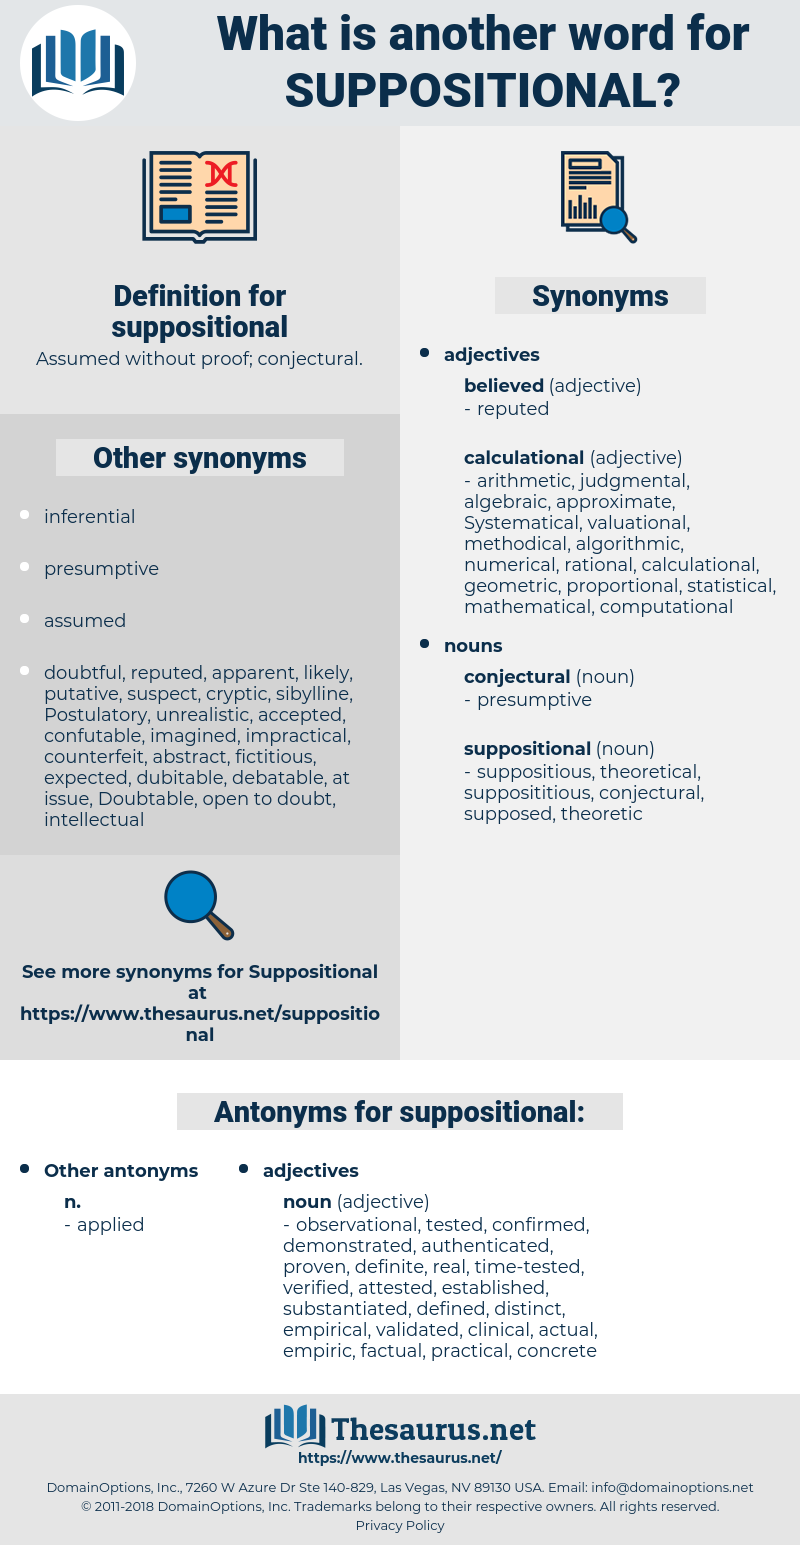 suppositional, synonym suppositional, another word for suppositional, words like suppositional, thesaurus suppositional